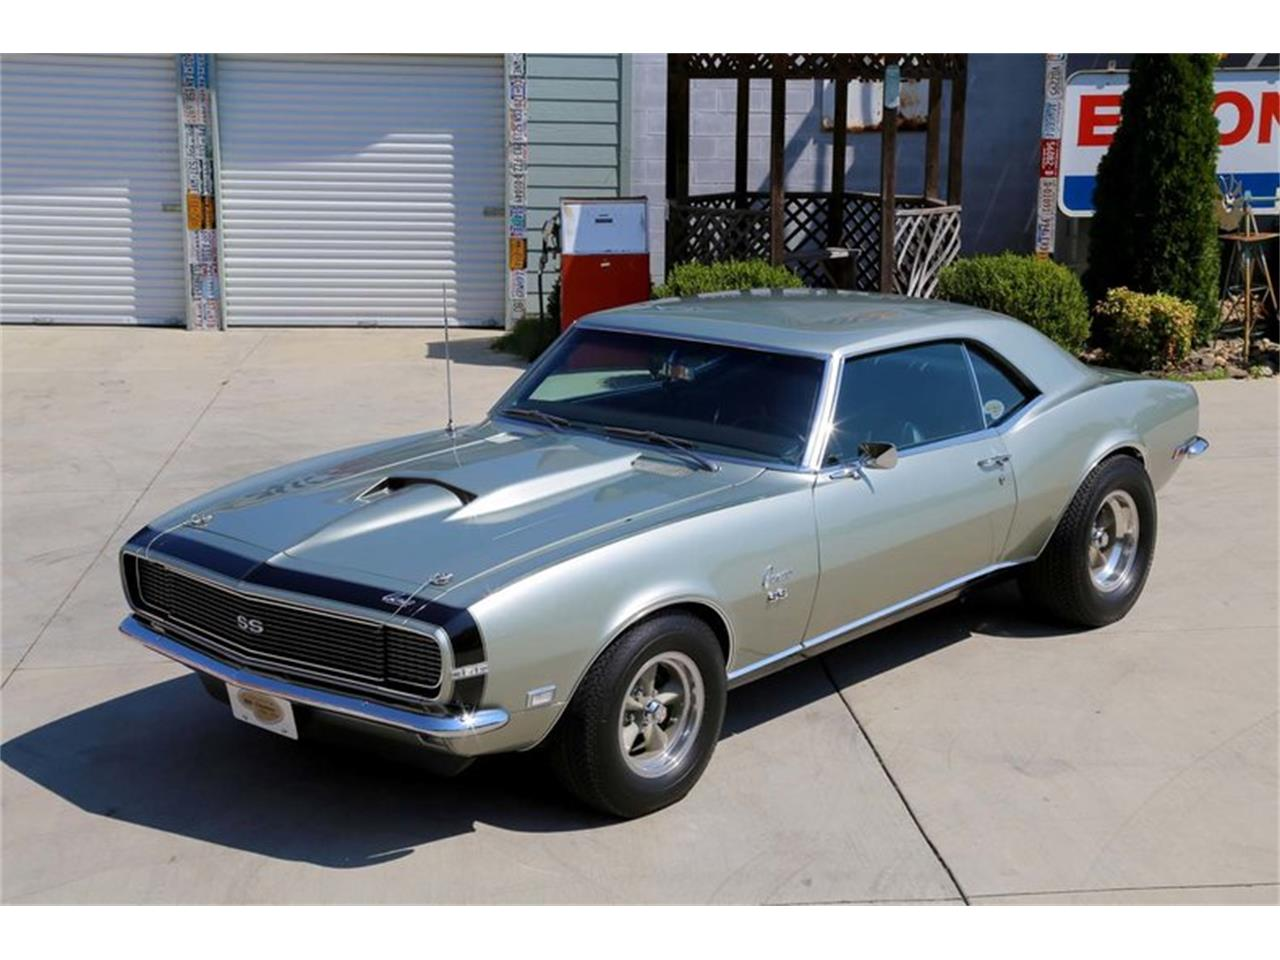 Large Picture of Classic '68 Camaro located in Tennessee - $174,995.00 - N6SC